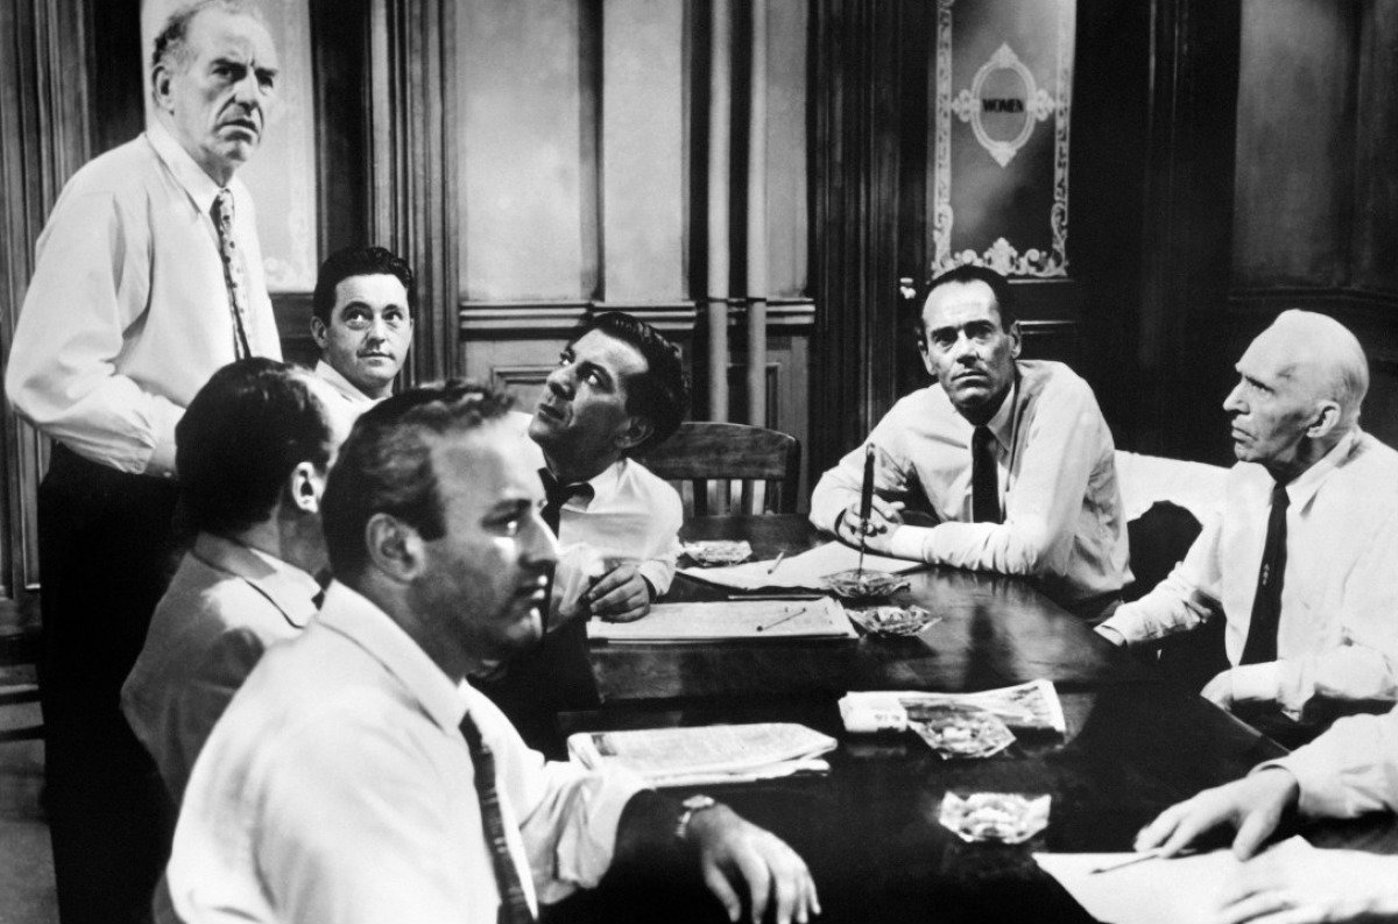 12 angry men by henry fonda Henry fonda is the lone holdout against convicting a puerto rican youth in the jury duty drama 12 angry men (1957.